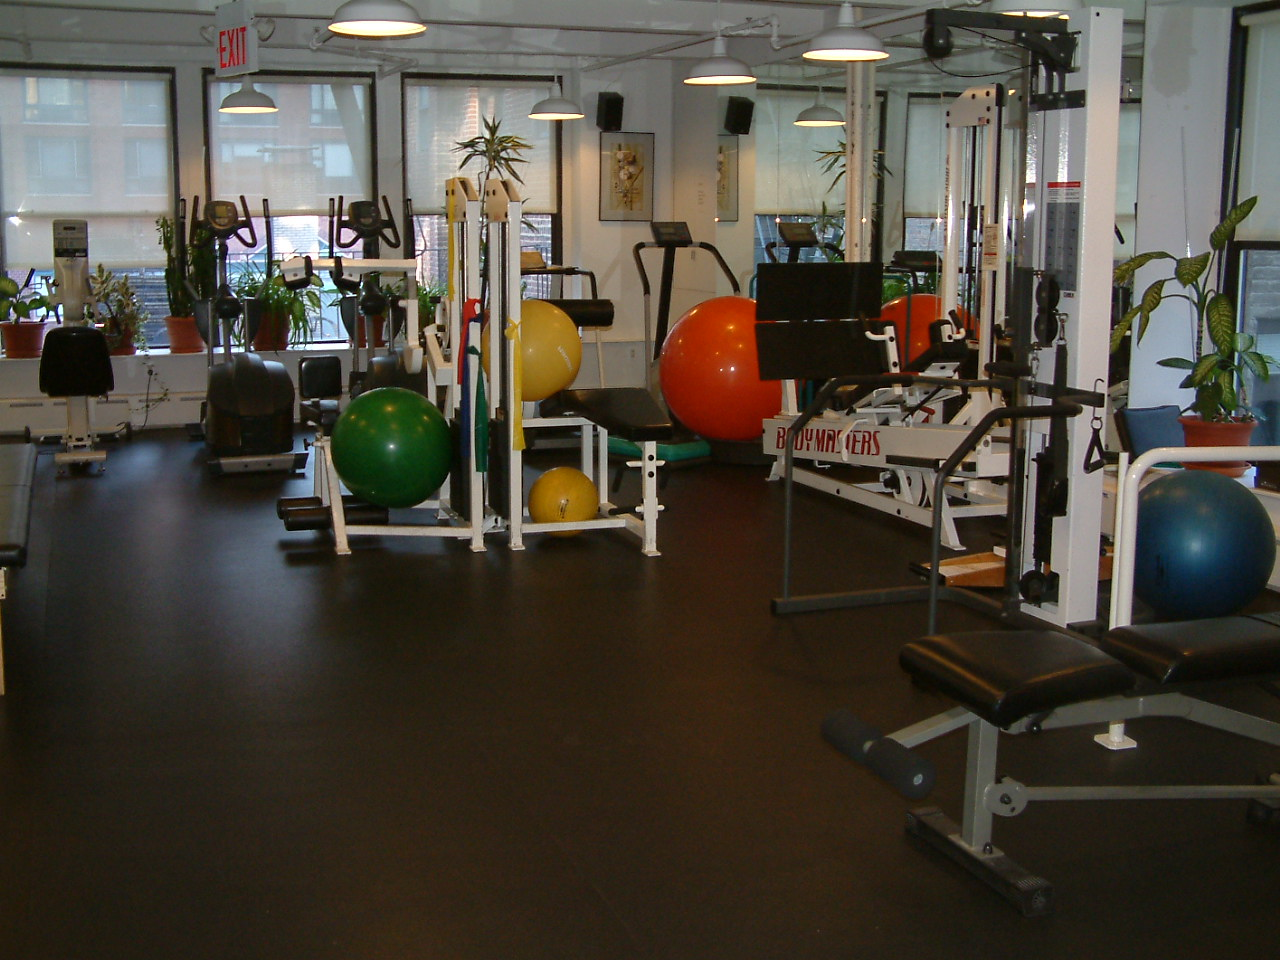 Equipment exercise physical therapy - You